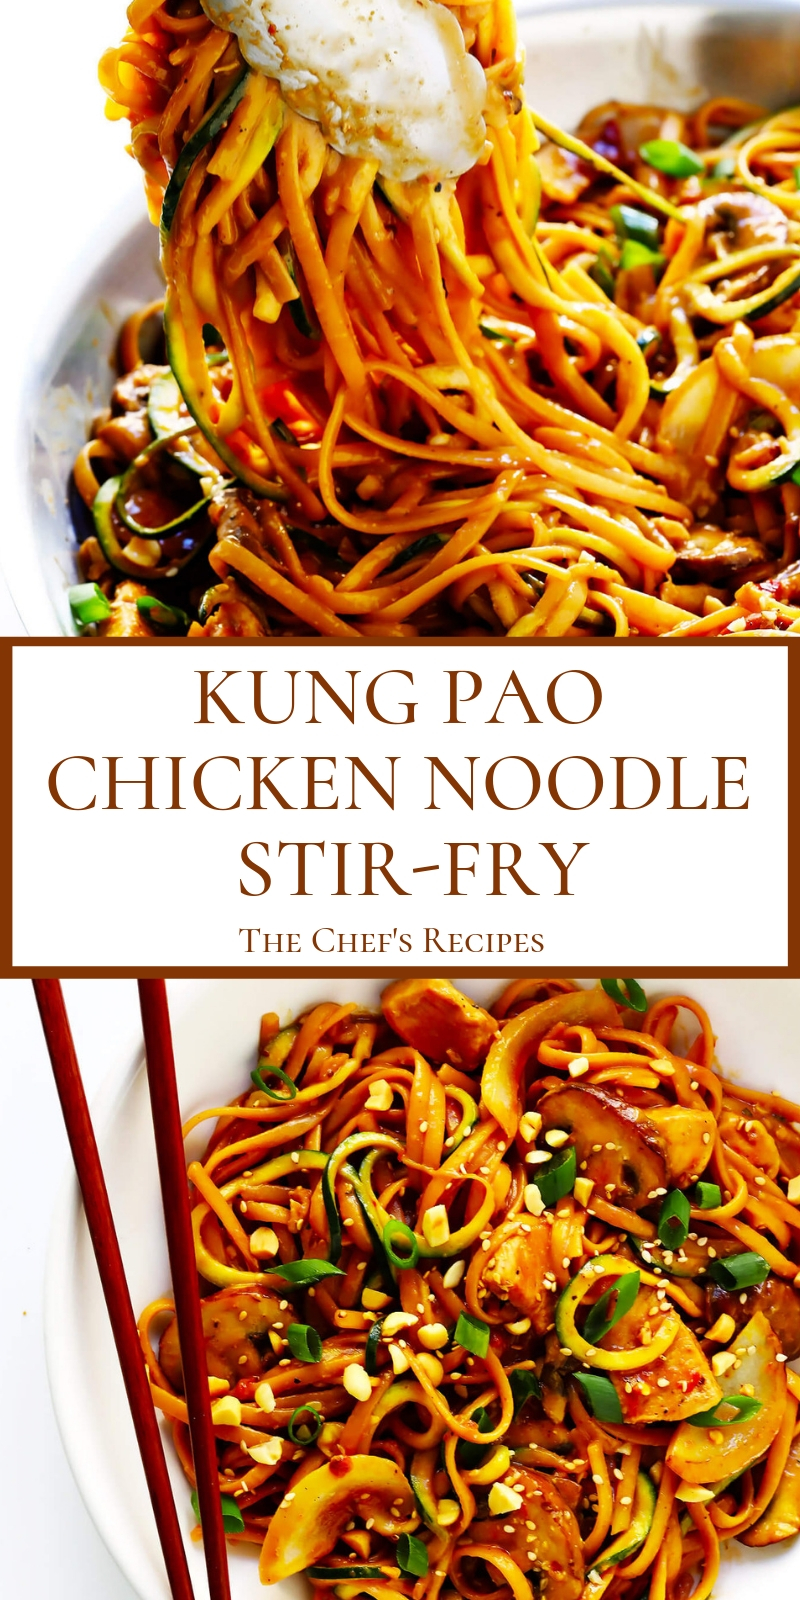 KUNG PAO CHICKEN NOODLE STIR-FRY